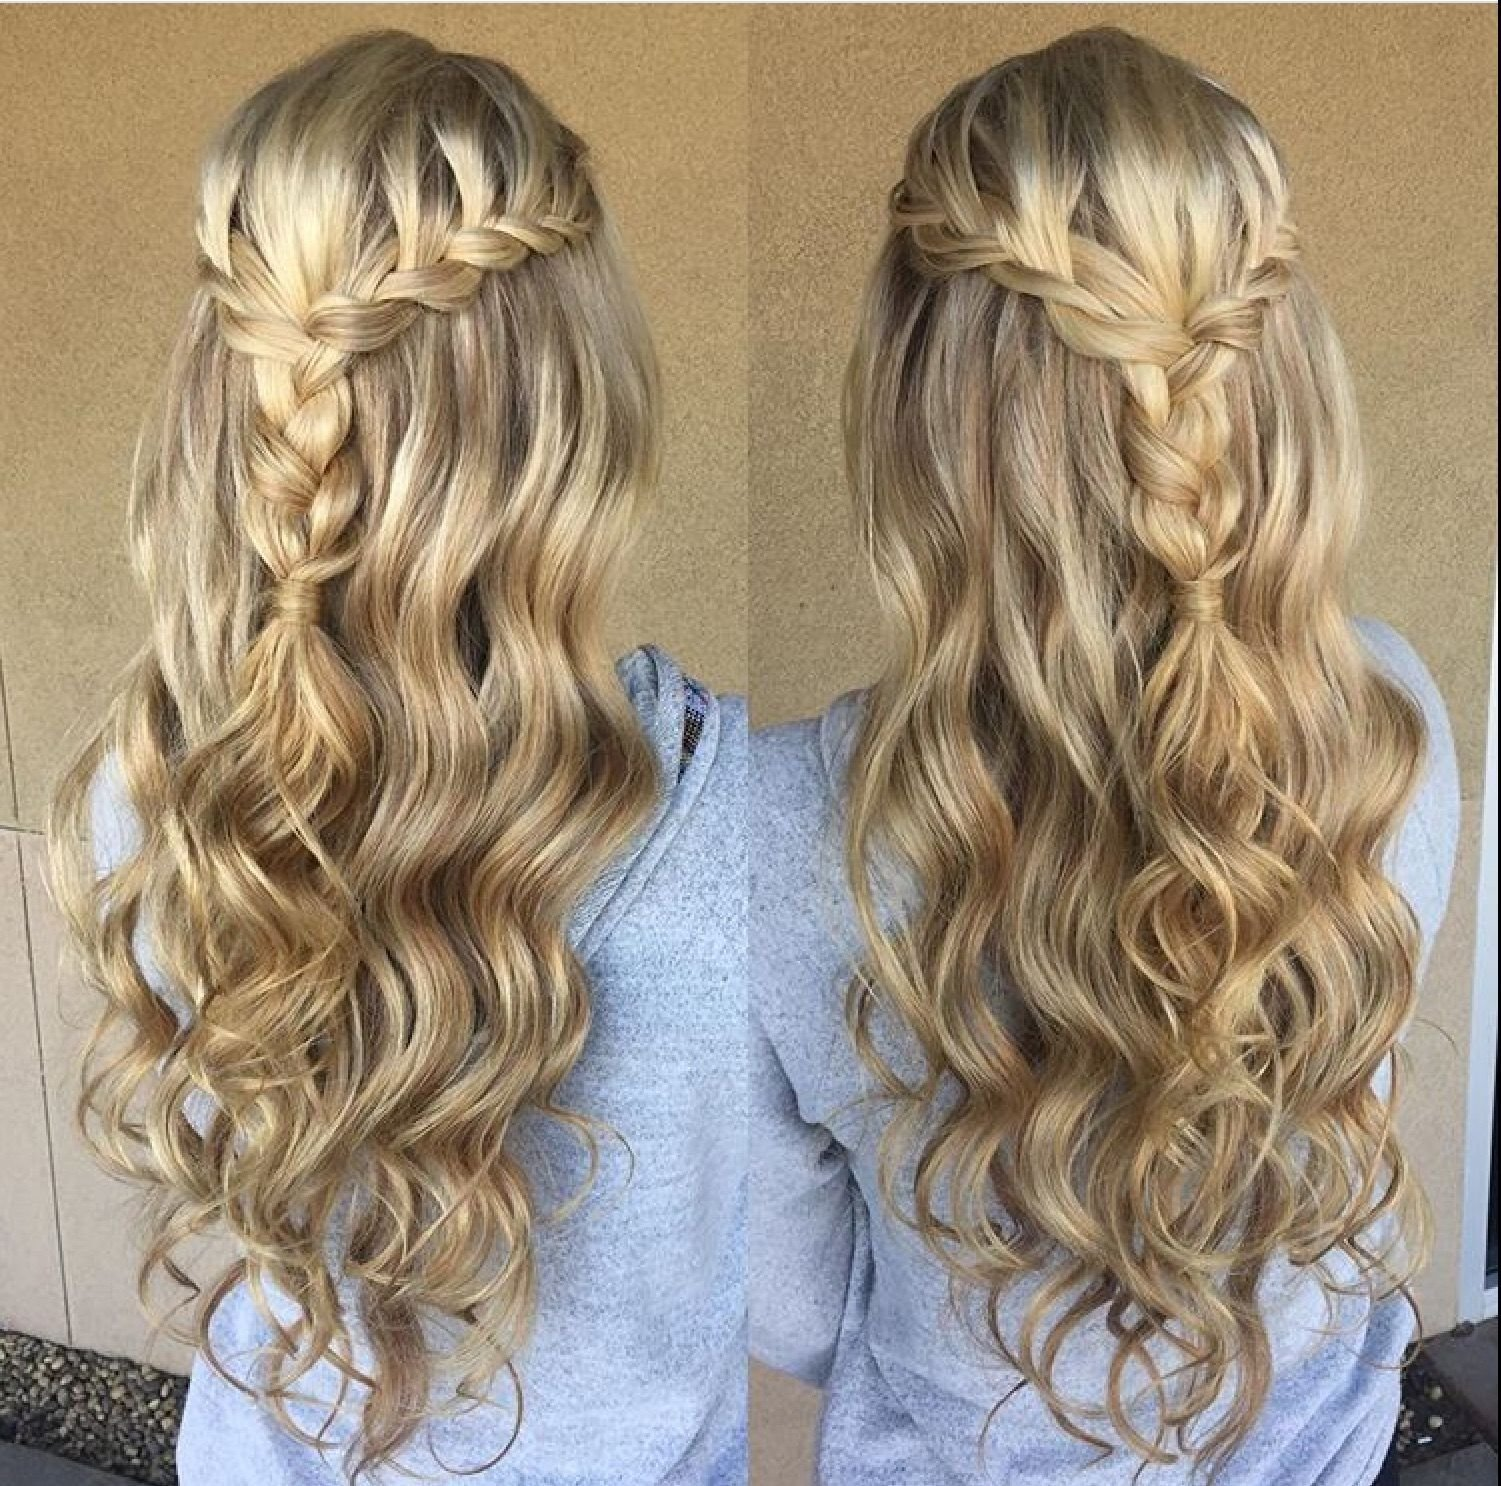 The Best Blonde Braid Prom Formal Hairstyle Half Up Long Hair Pictures